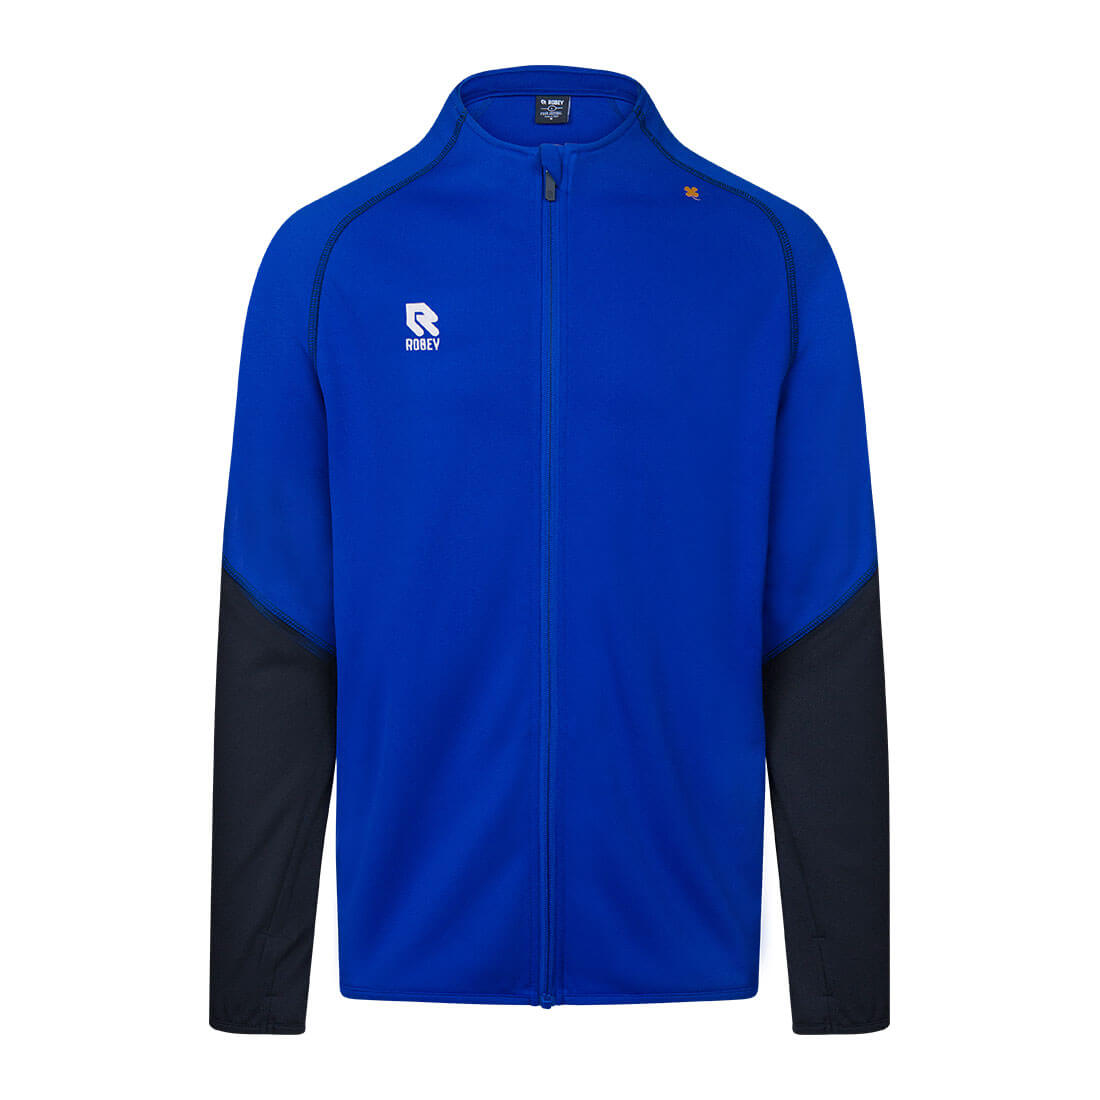 Robey Performance Full-Zip Jacket - Royal Blue